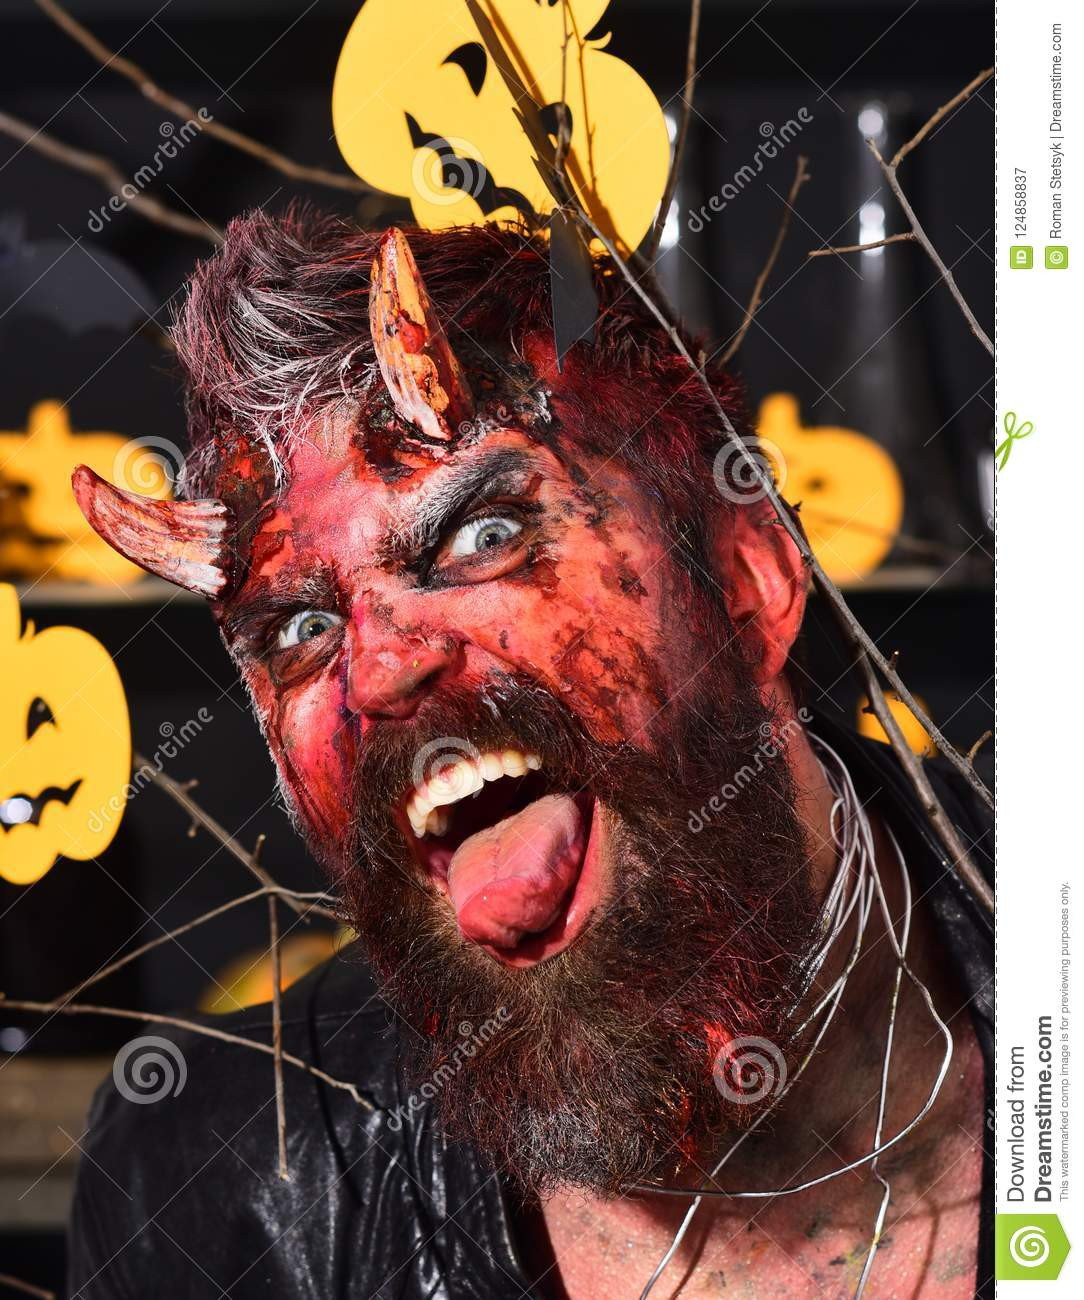 man wearing scary makeup with halloween pumpkins and bats decor